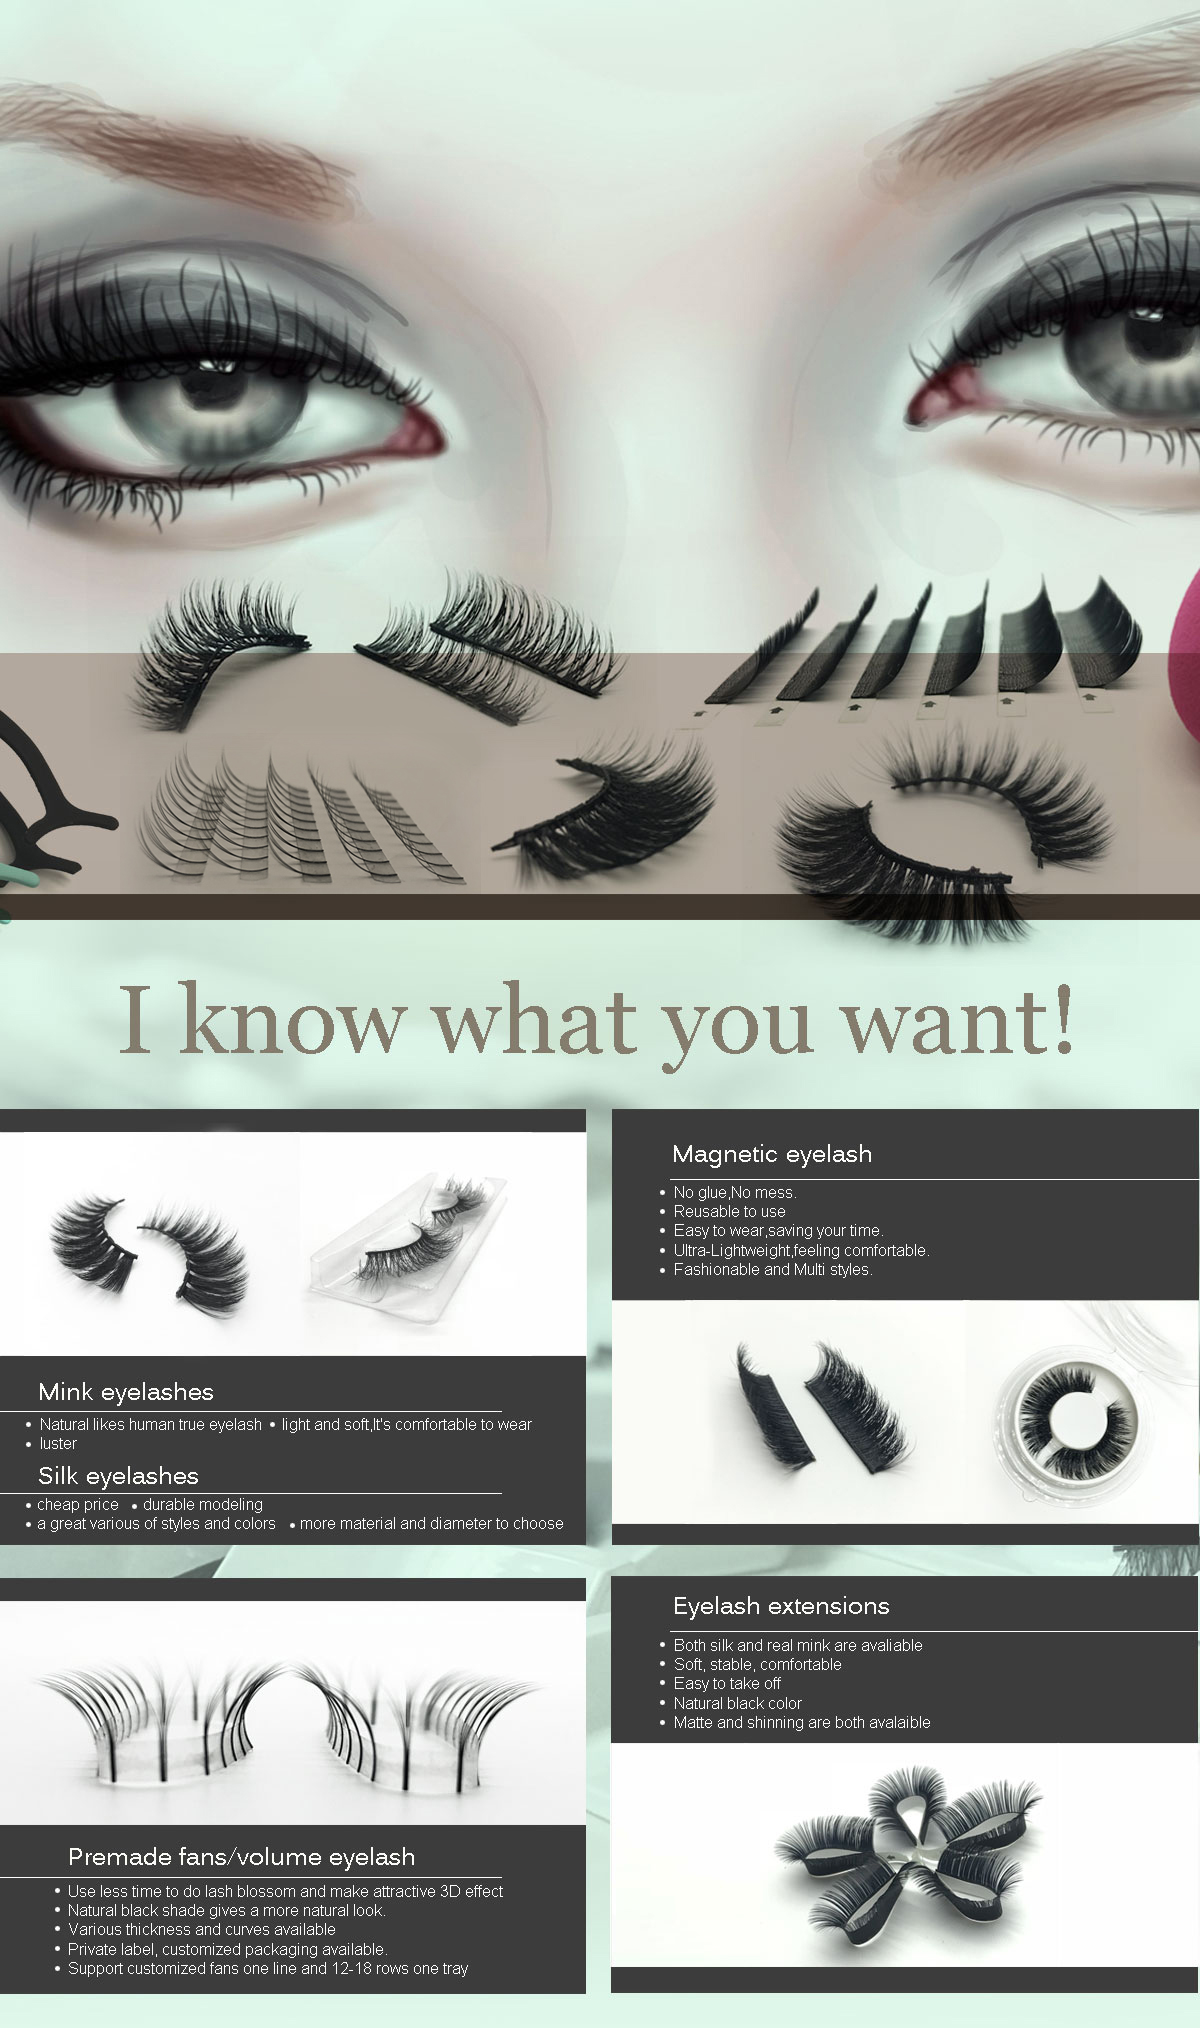 dafa2601a66 Xi'an Chulan E-Commerce Co., Ltd. - Fake eyelashes, Mink eyelashes